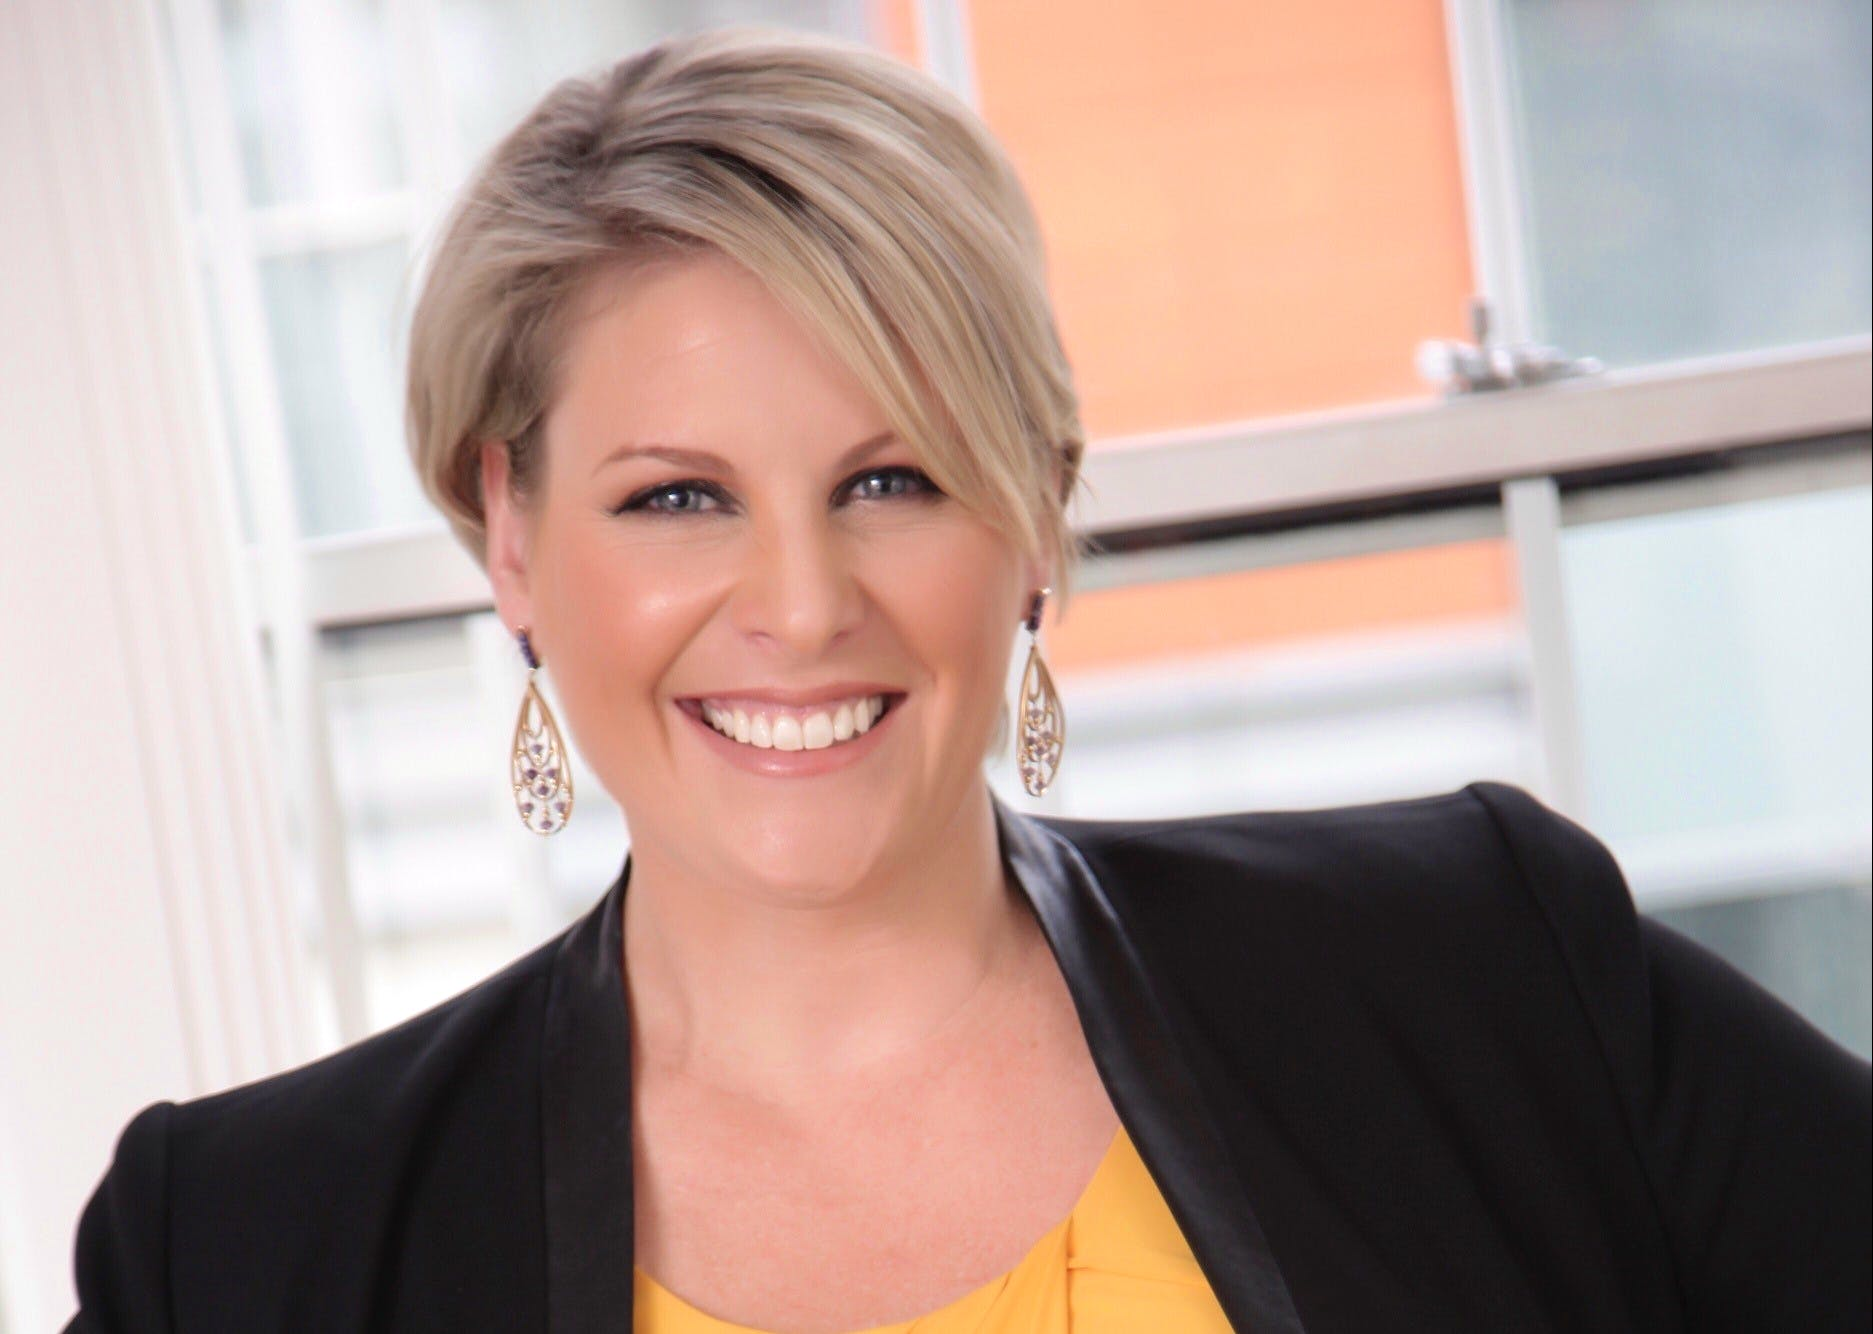 Kathryn Higgs, executive coach and lawyer gives advice for career clinic on find time job search